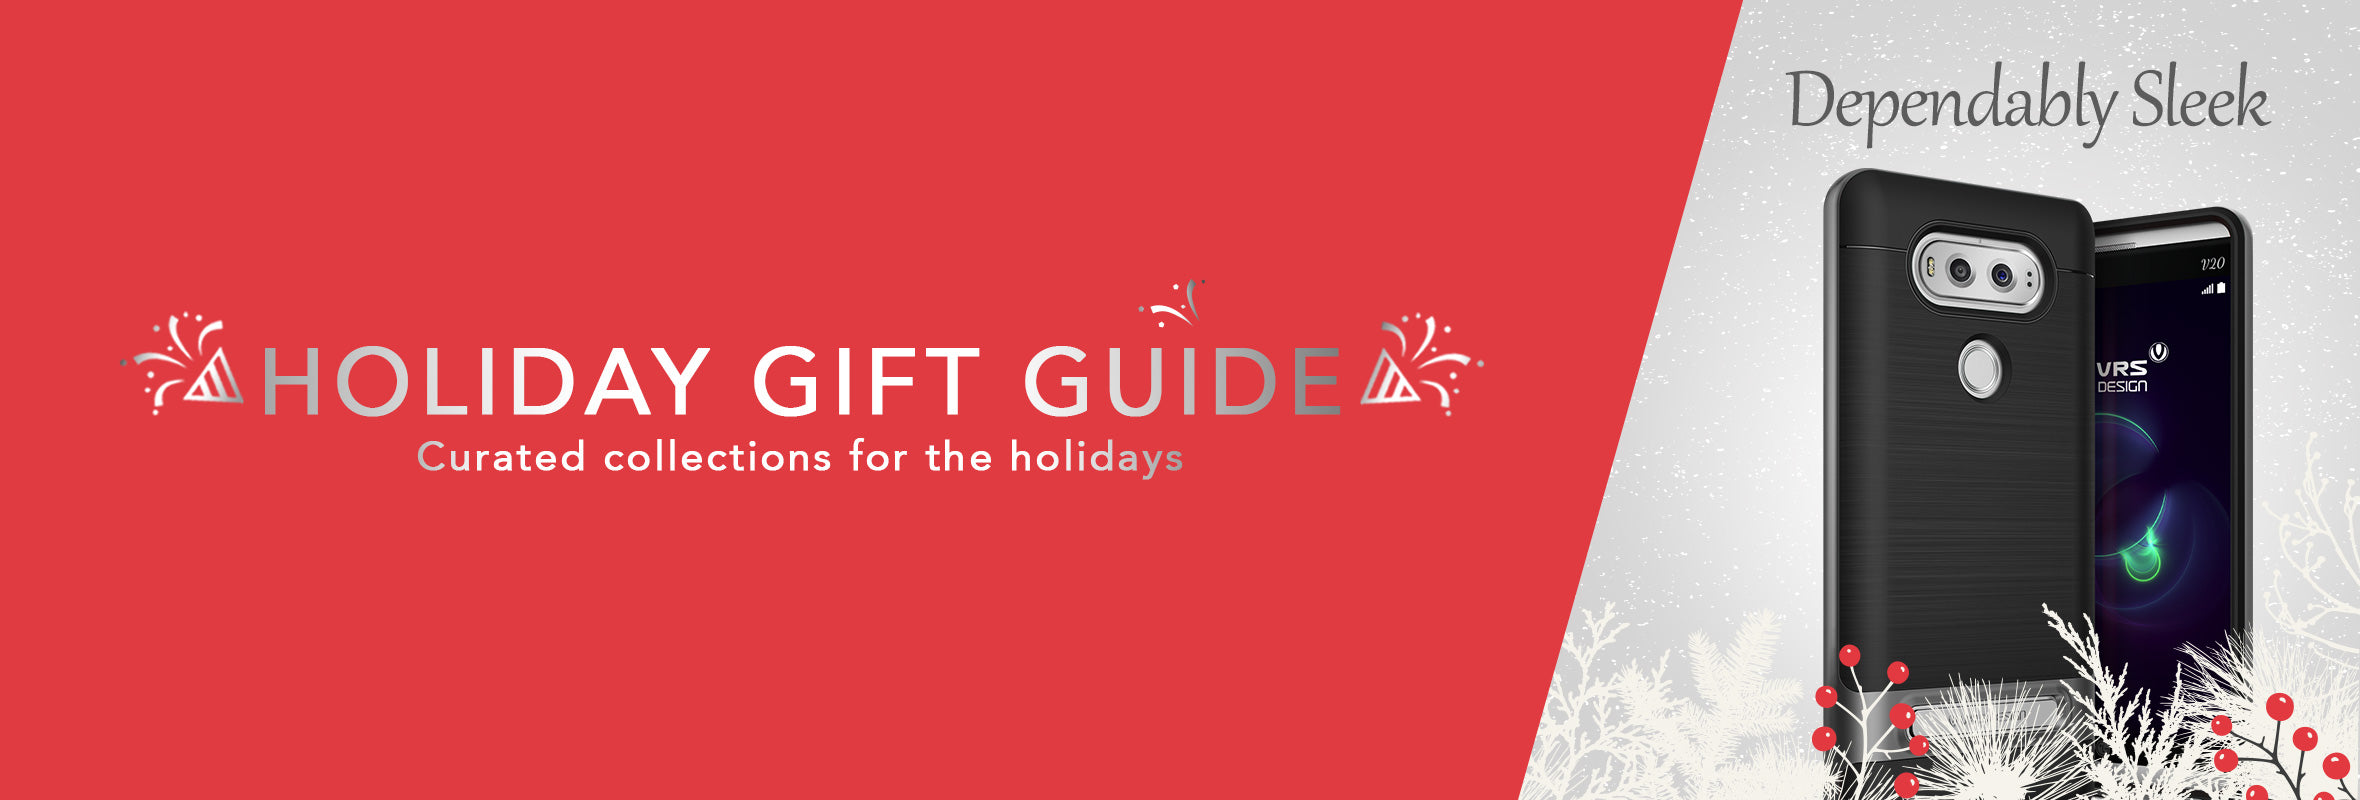 Holiday Gift Guide - Dependably Sleek